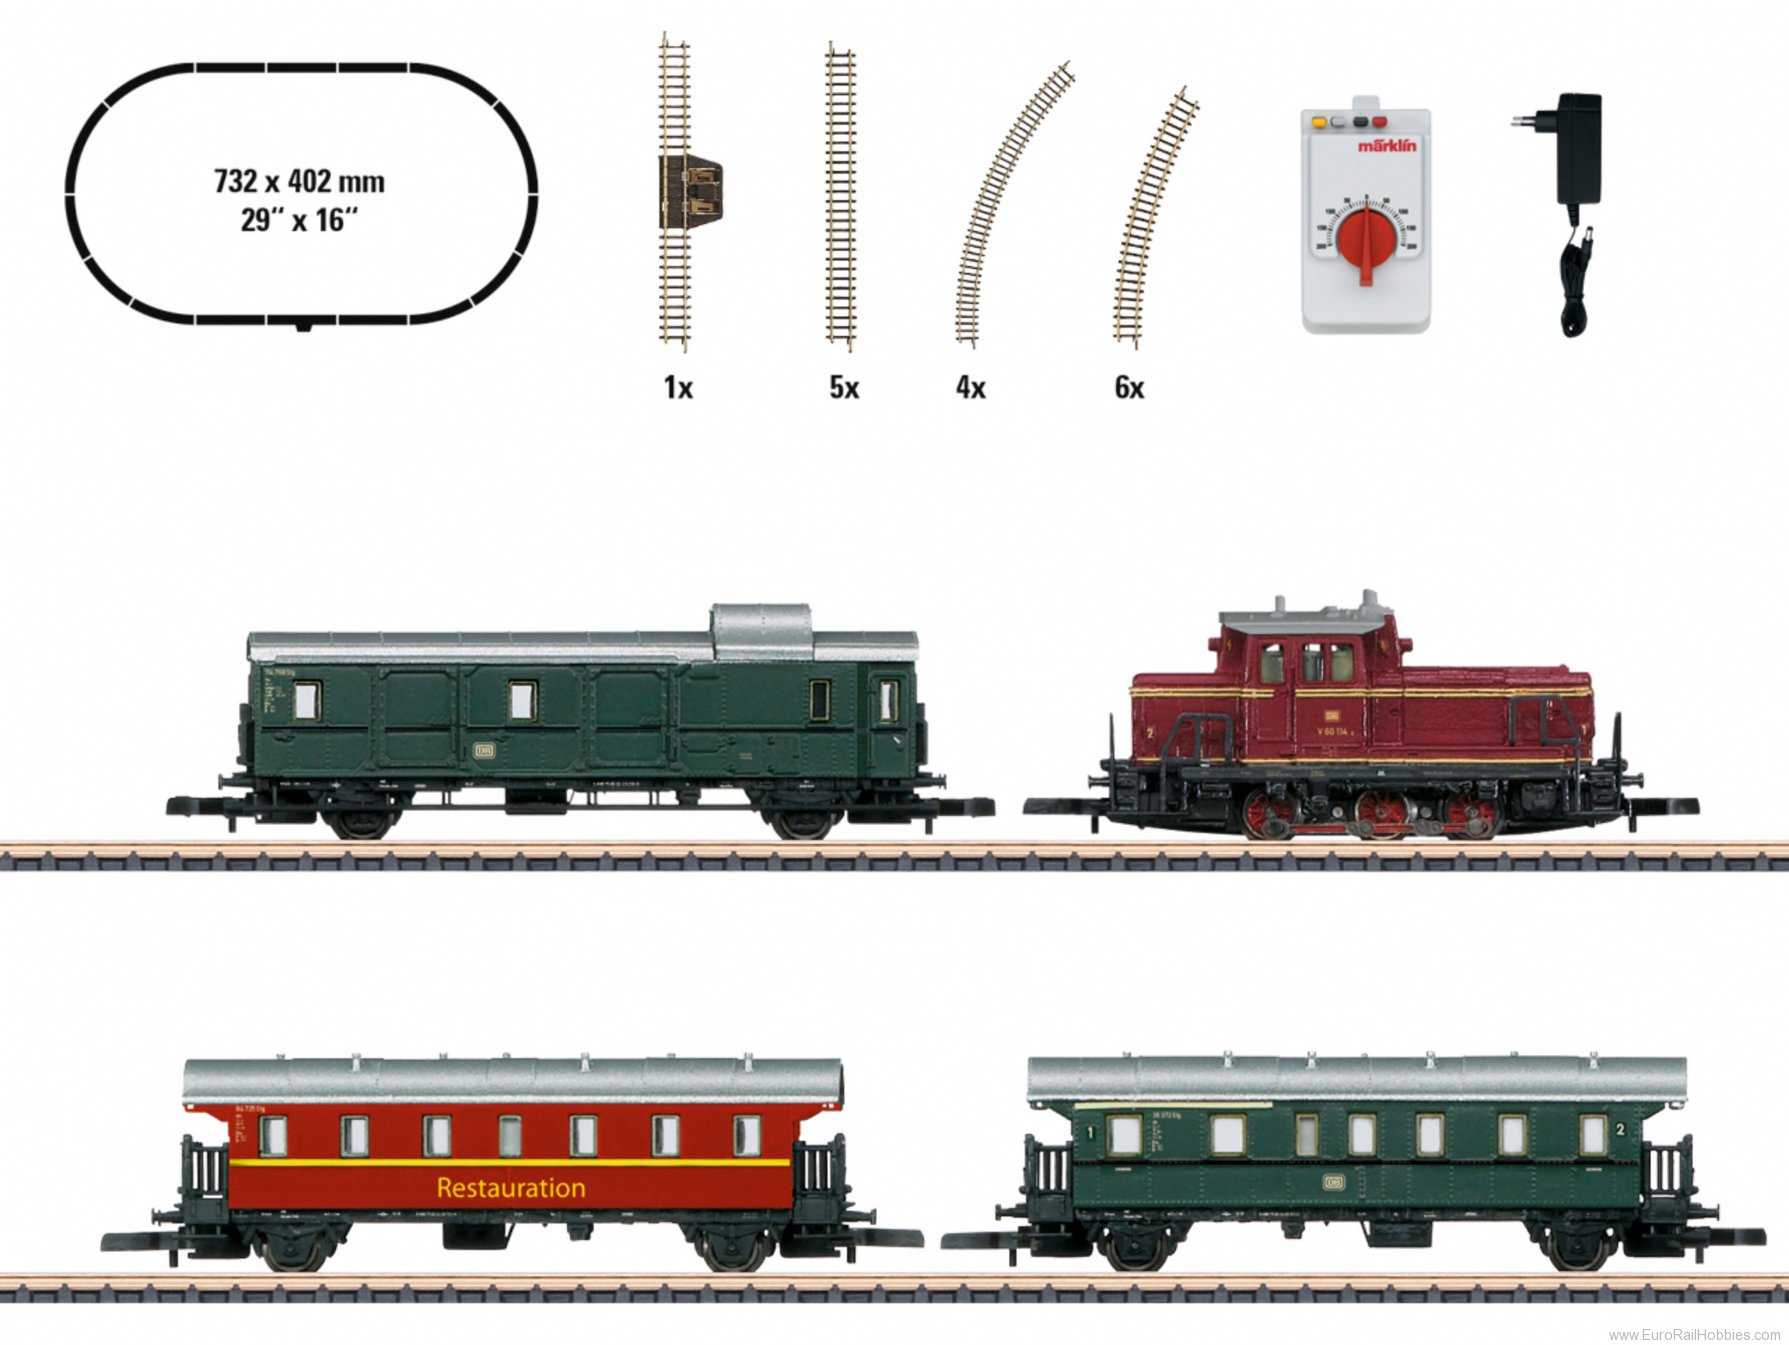 Marklin 81871 'Museum Passenger Train' Starter Set, (large